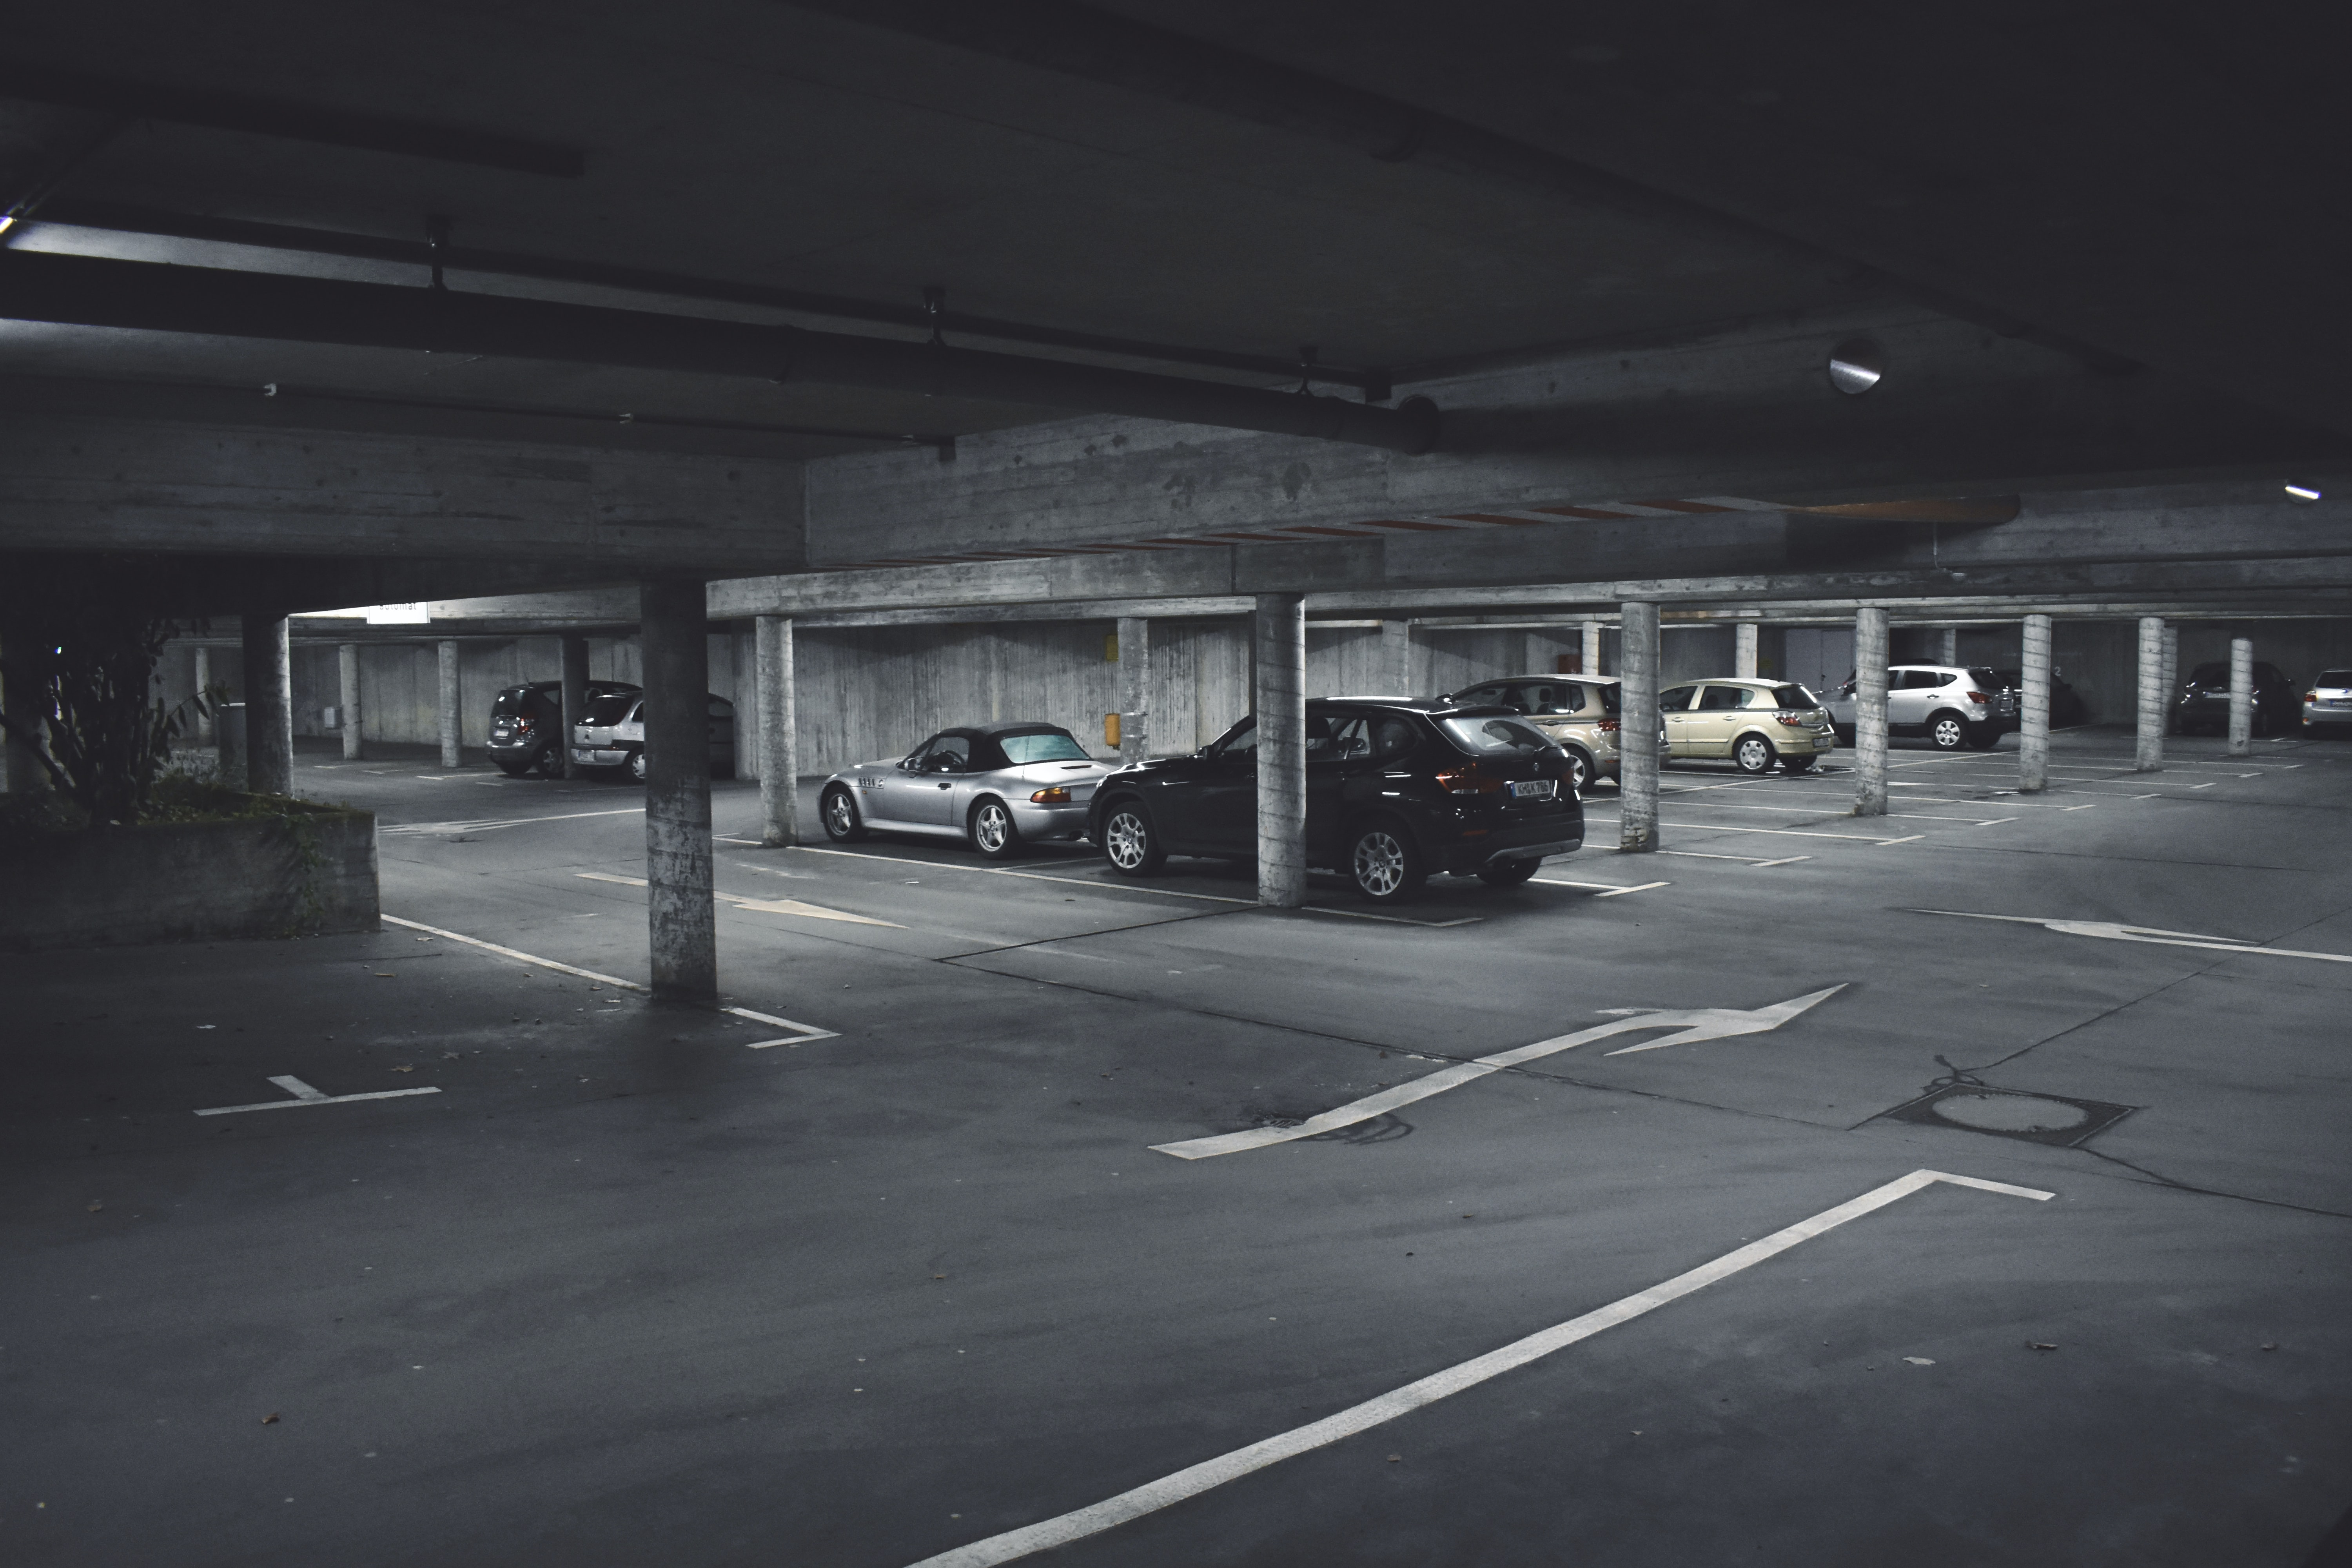 cars parked on parking area